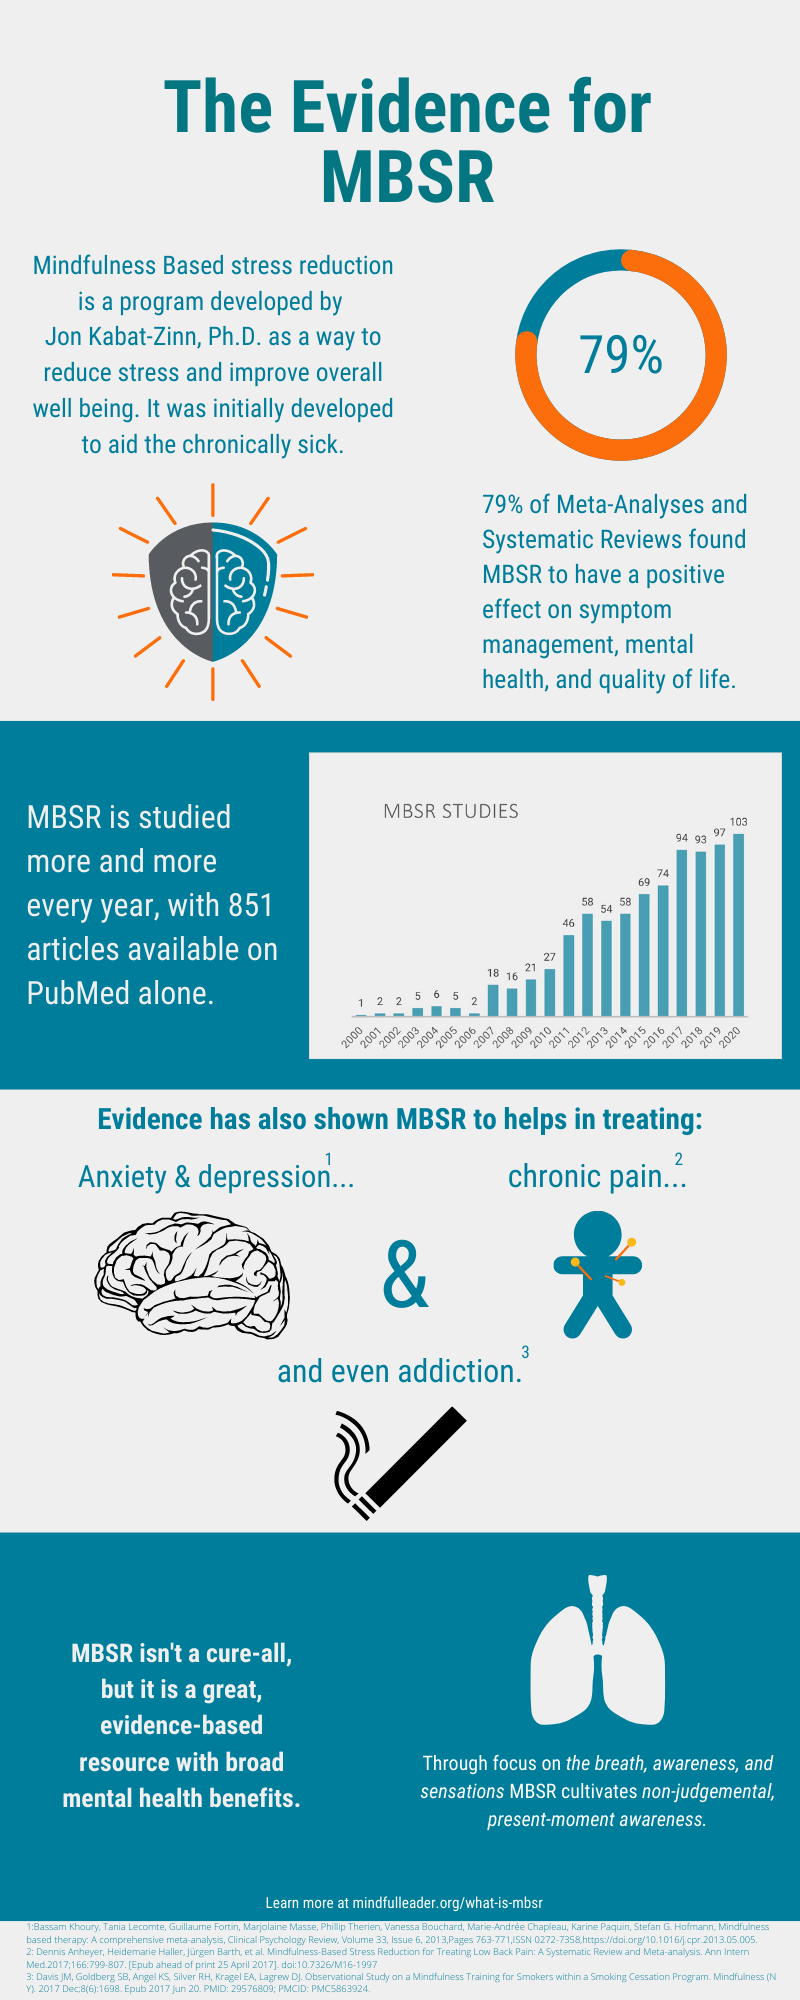 The Evidence for MBSR